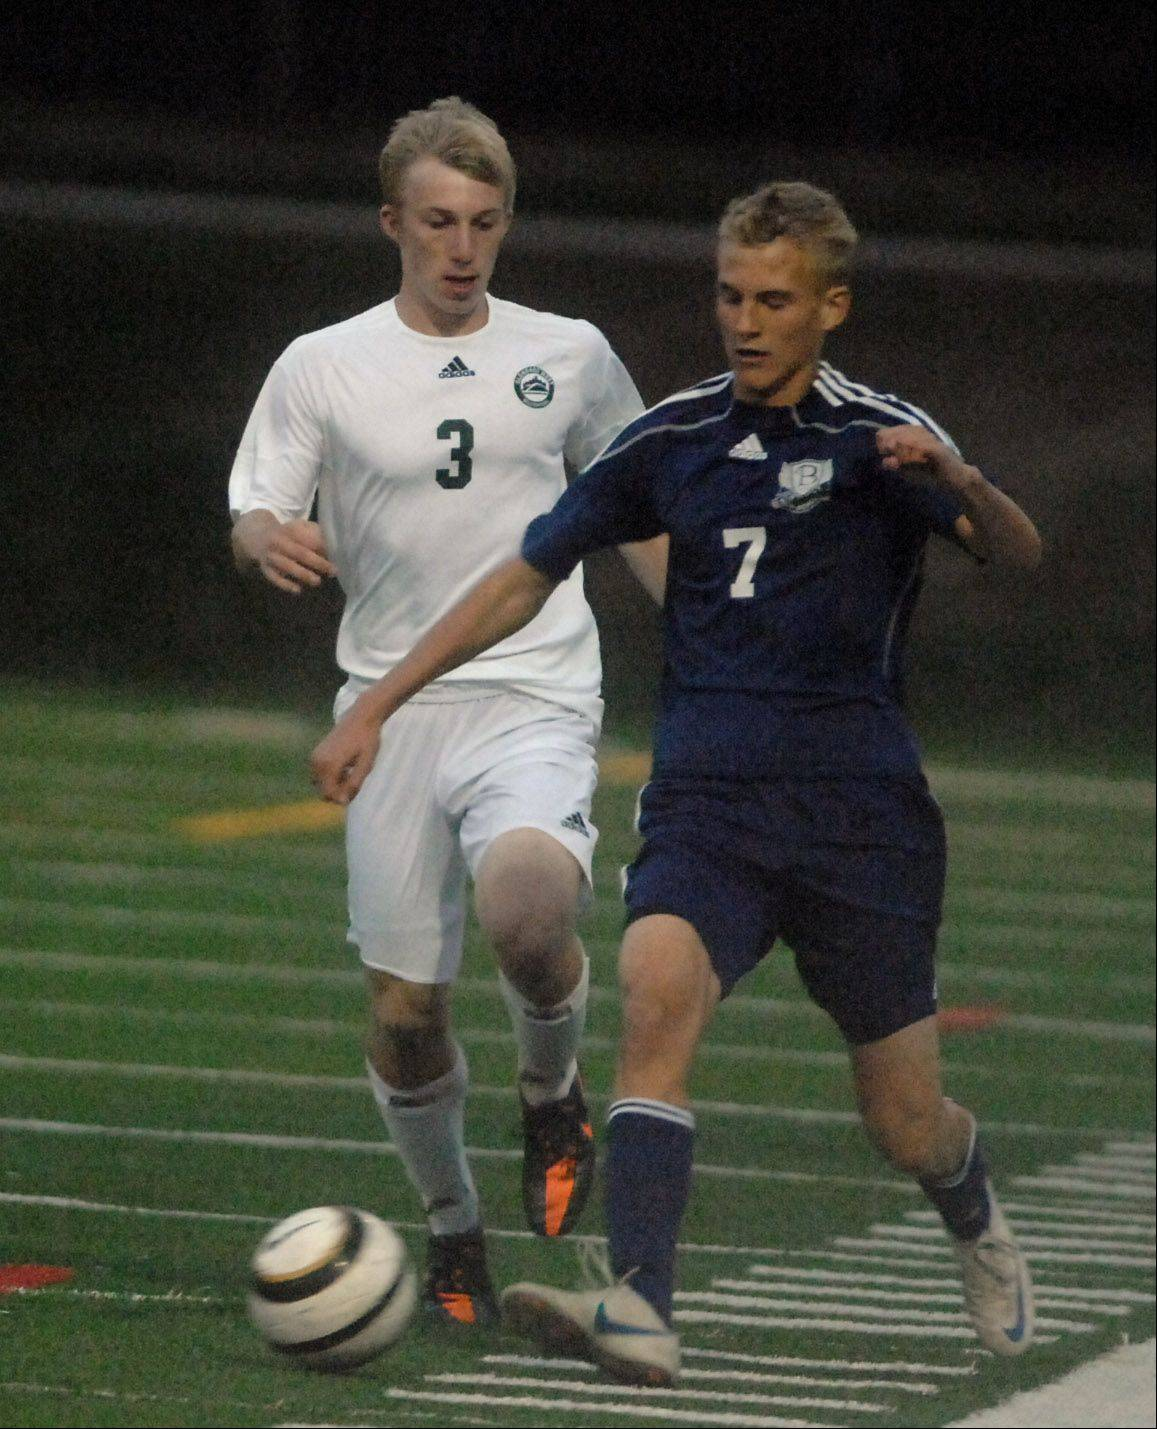 Nathan Hall,left, of Glenbrad West and Mike Parzy of Bartlett move the ball during the bartlett at Glenbard West boys soccer game Thursday.